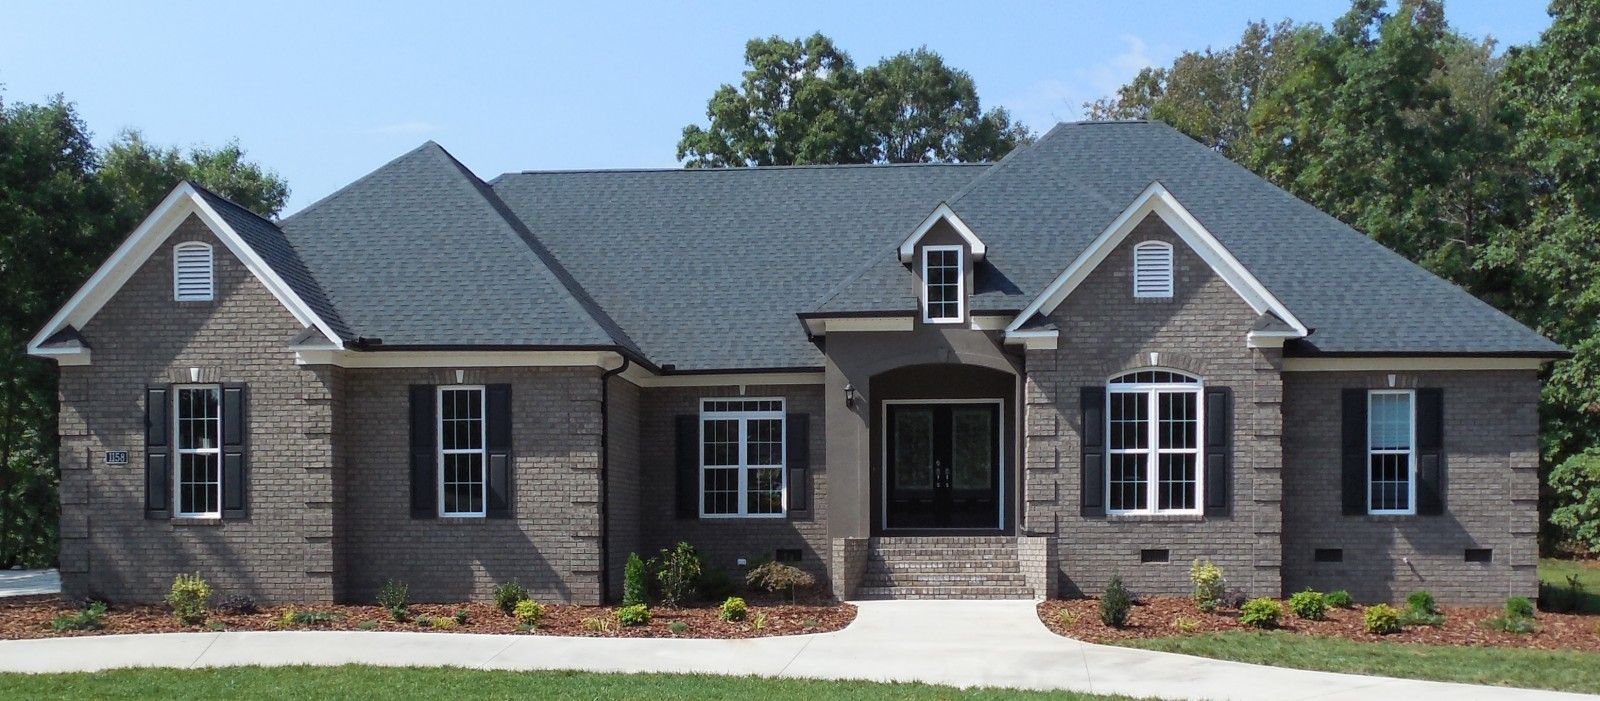 Blog triangle brick home exteriors pinterest Black brick homes